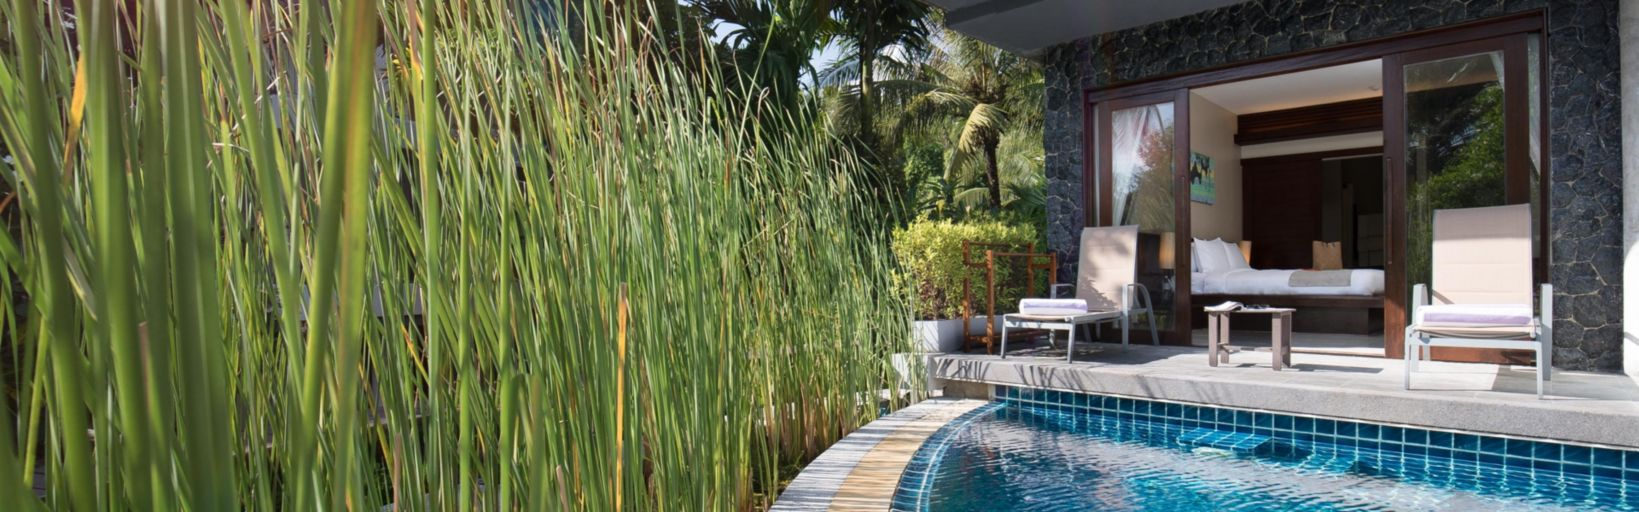 holiday-inn-resort-krabi-5069283409-16×5